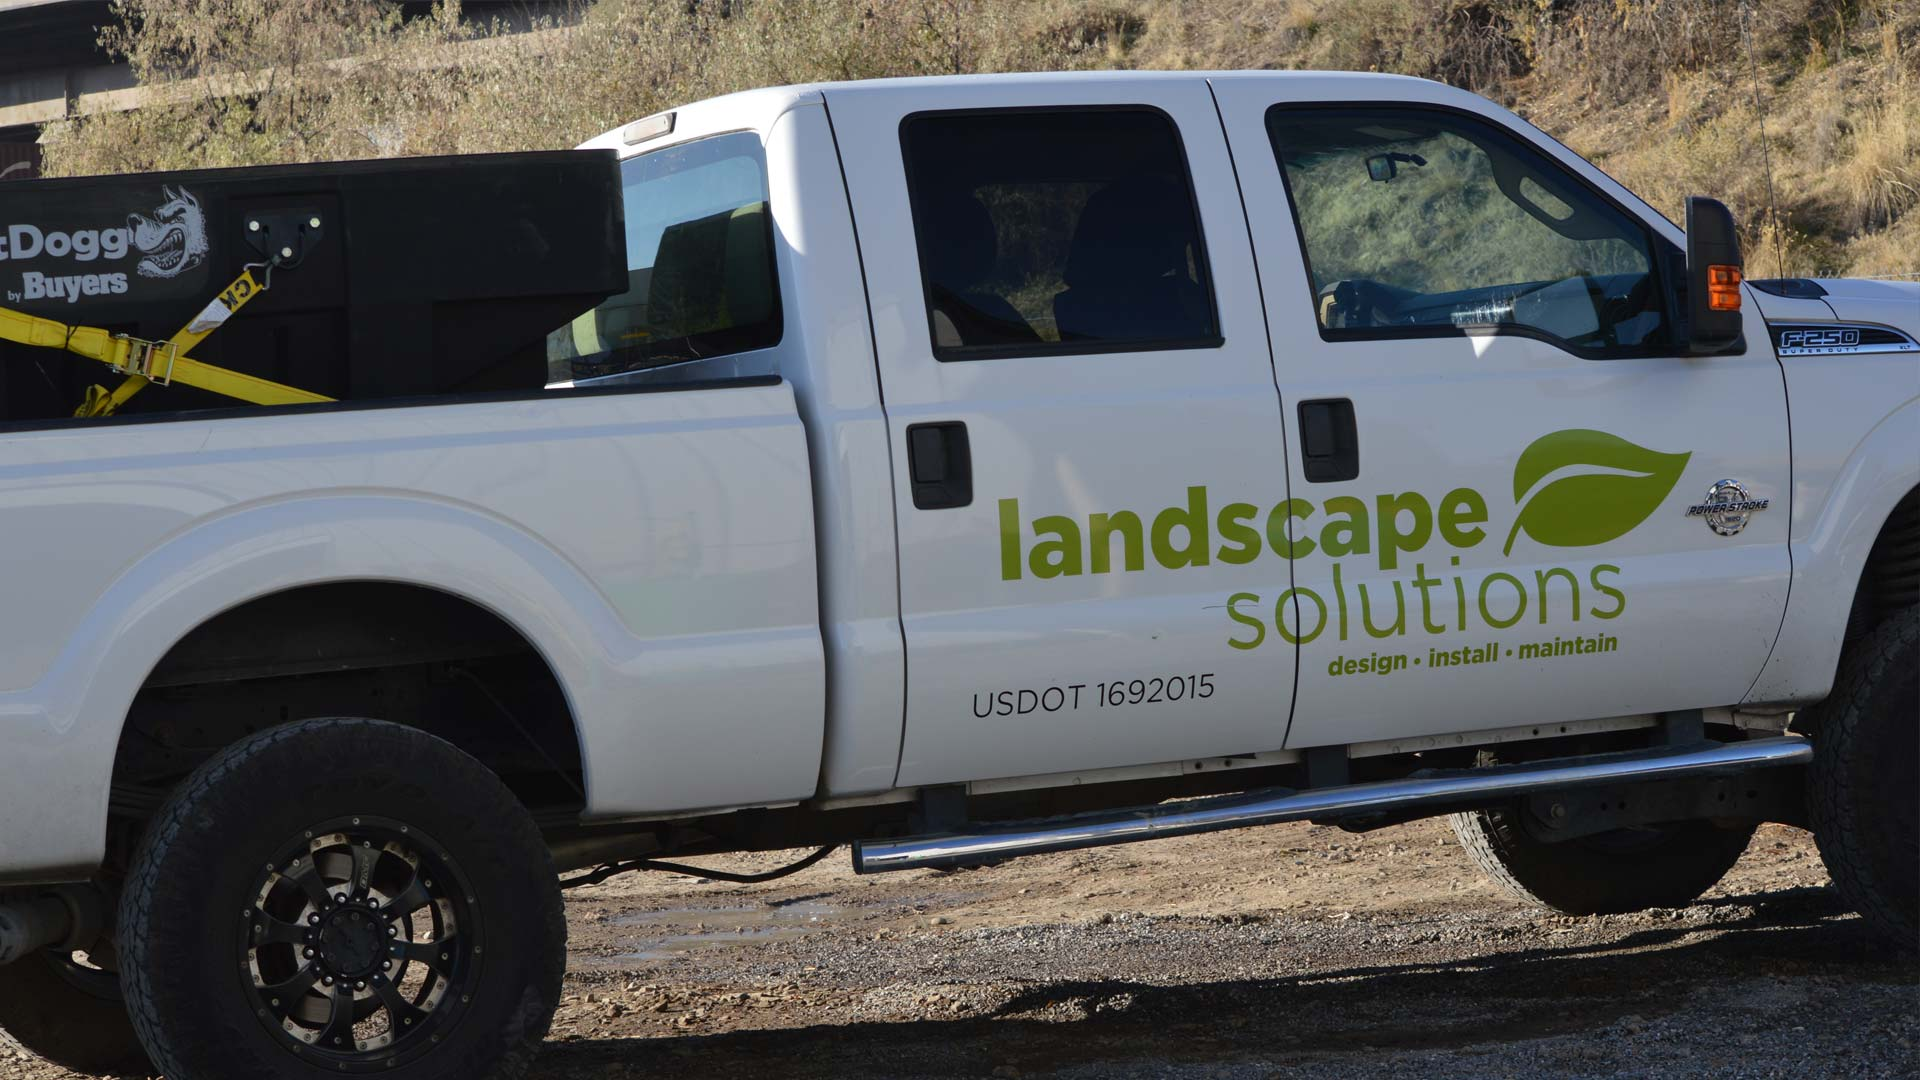 Our work truck with our contact information signage.